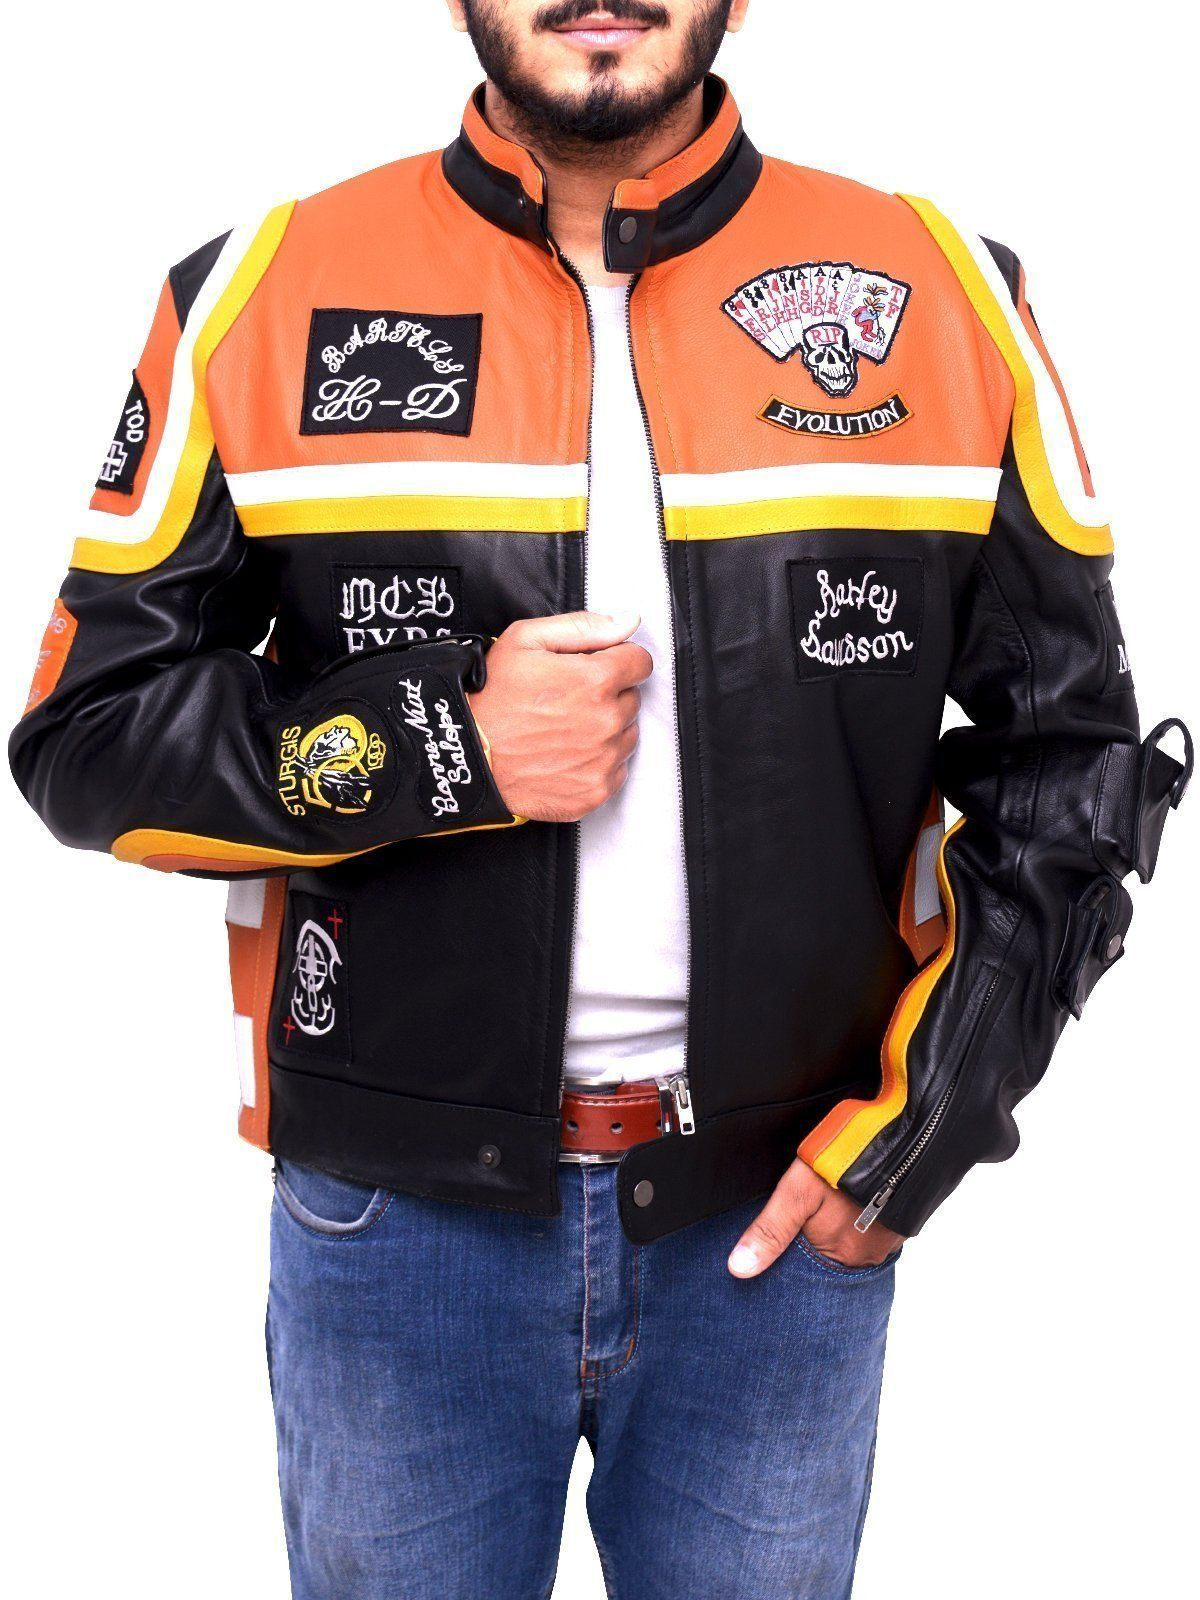 Harley Davidson and The Marlboro Man Jacket in 2020